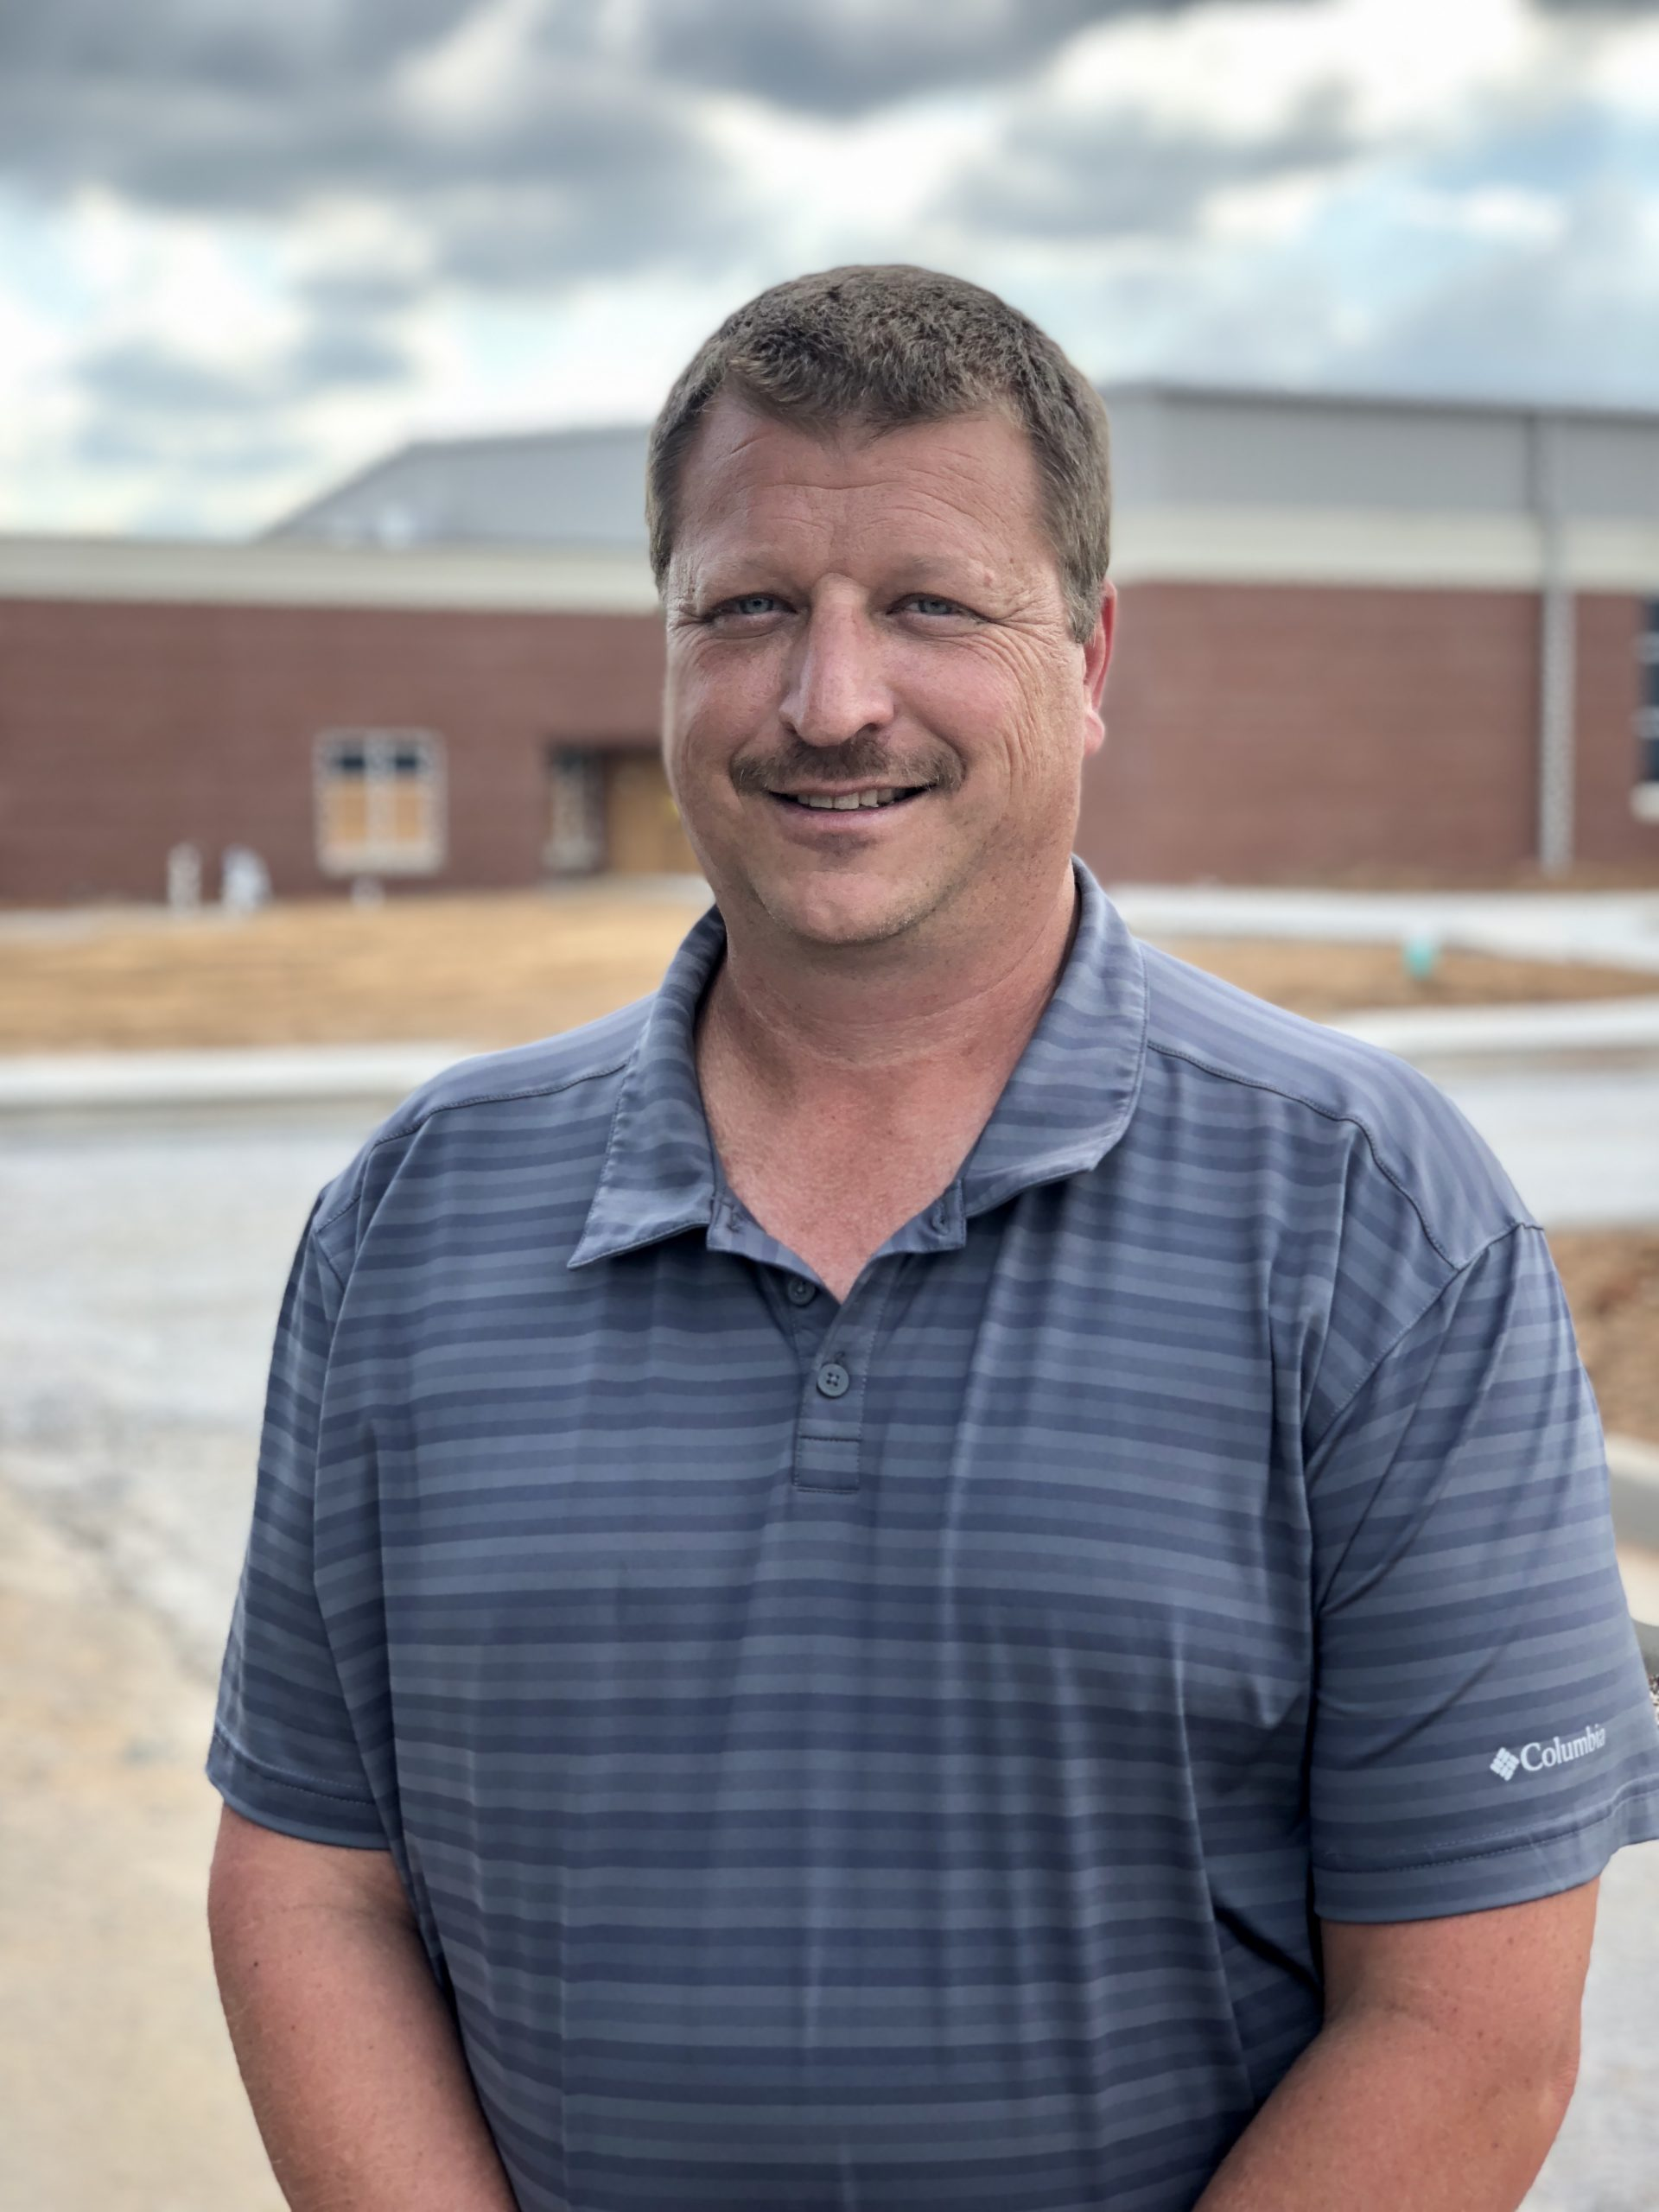 Tony Henson chosen as Sportsplex Facilities Coordinator